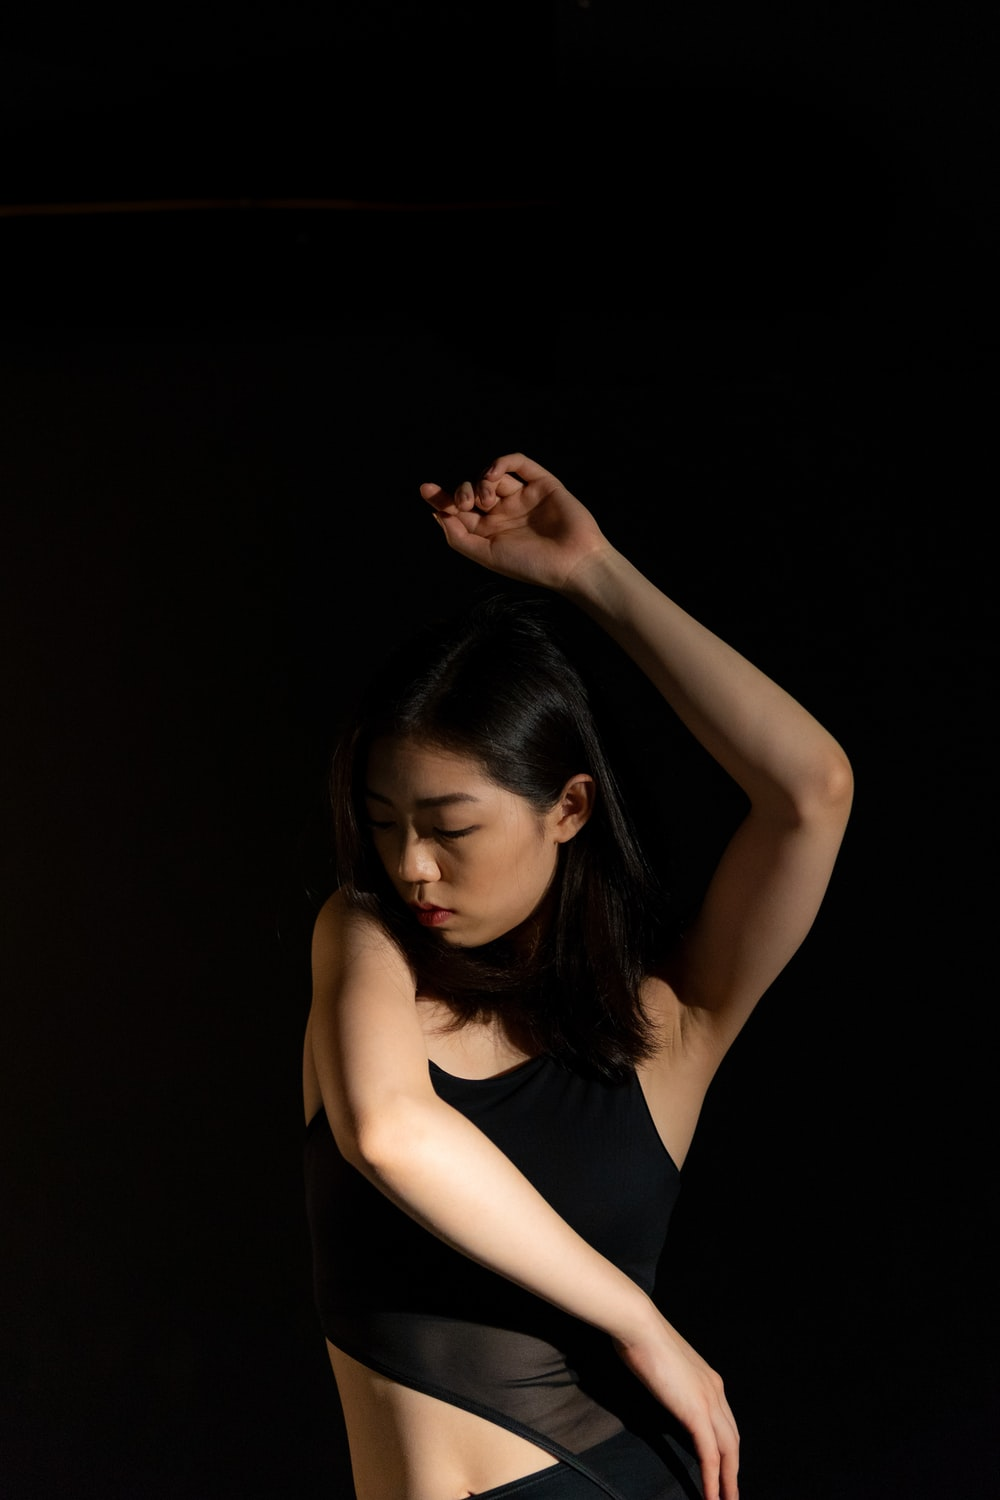 dancing woman against black background